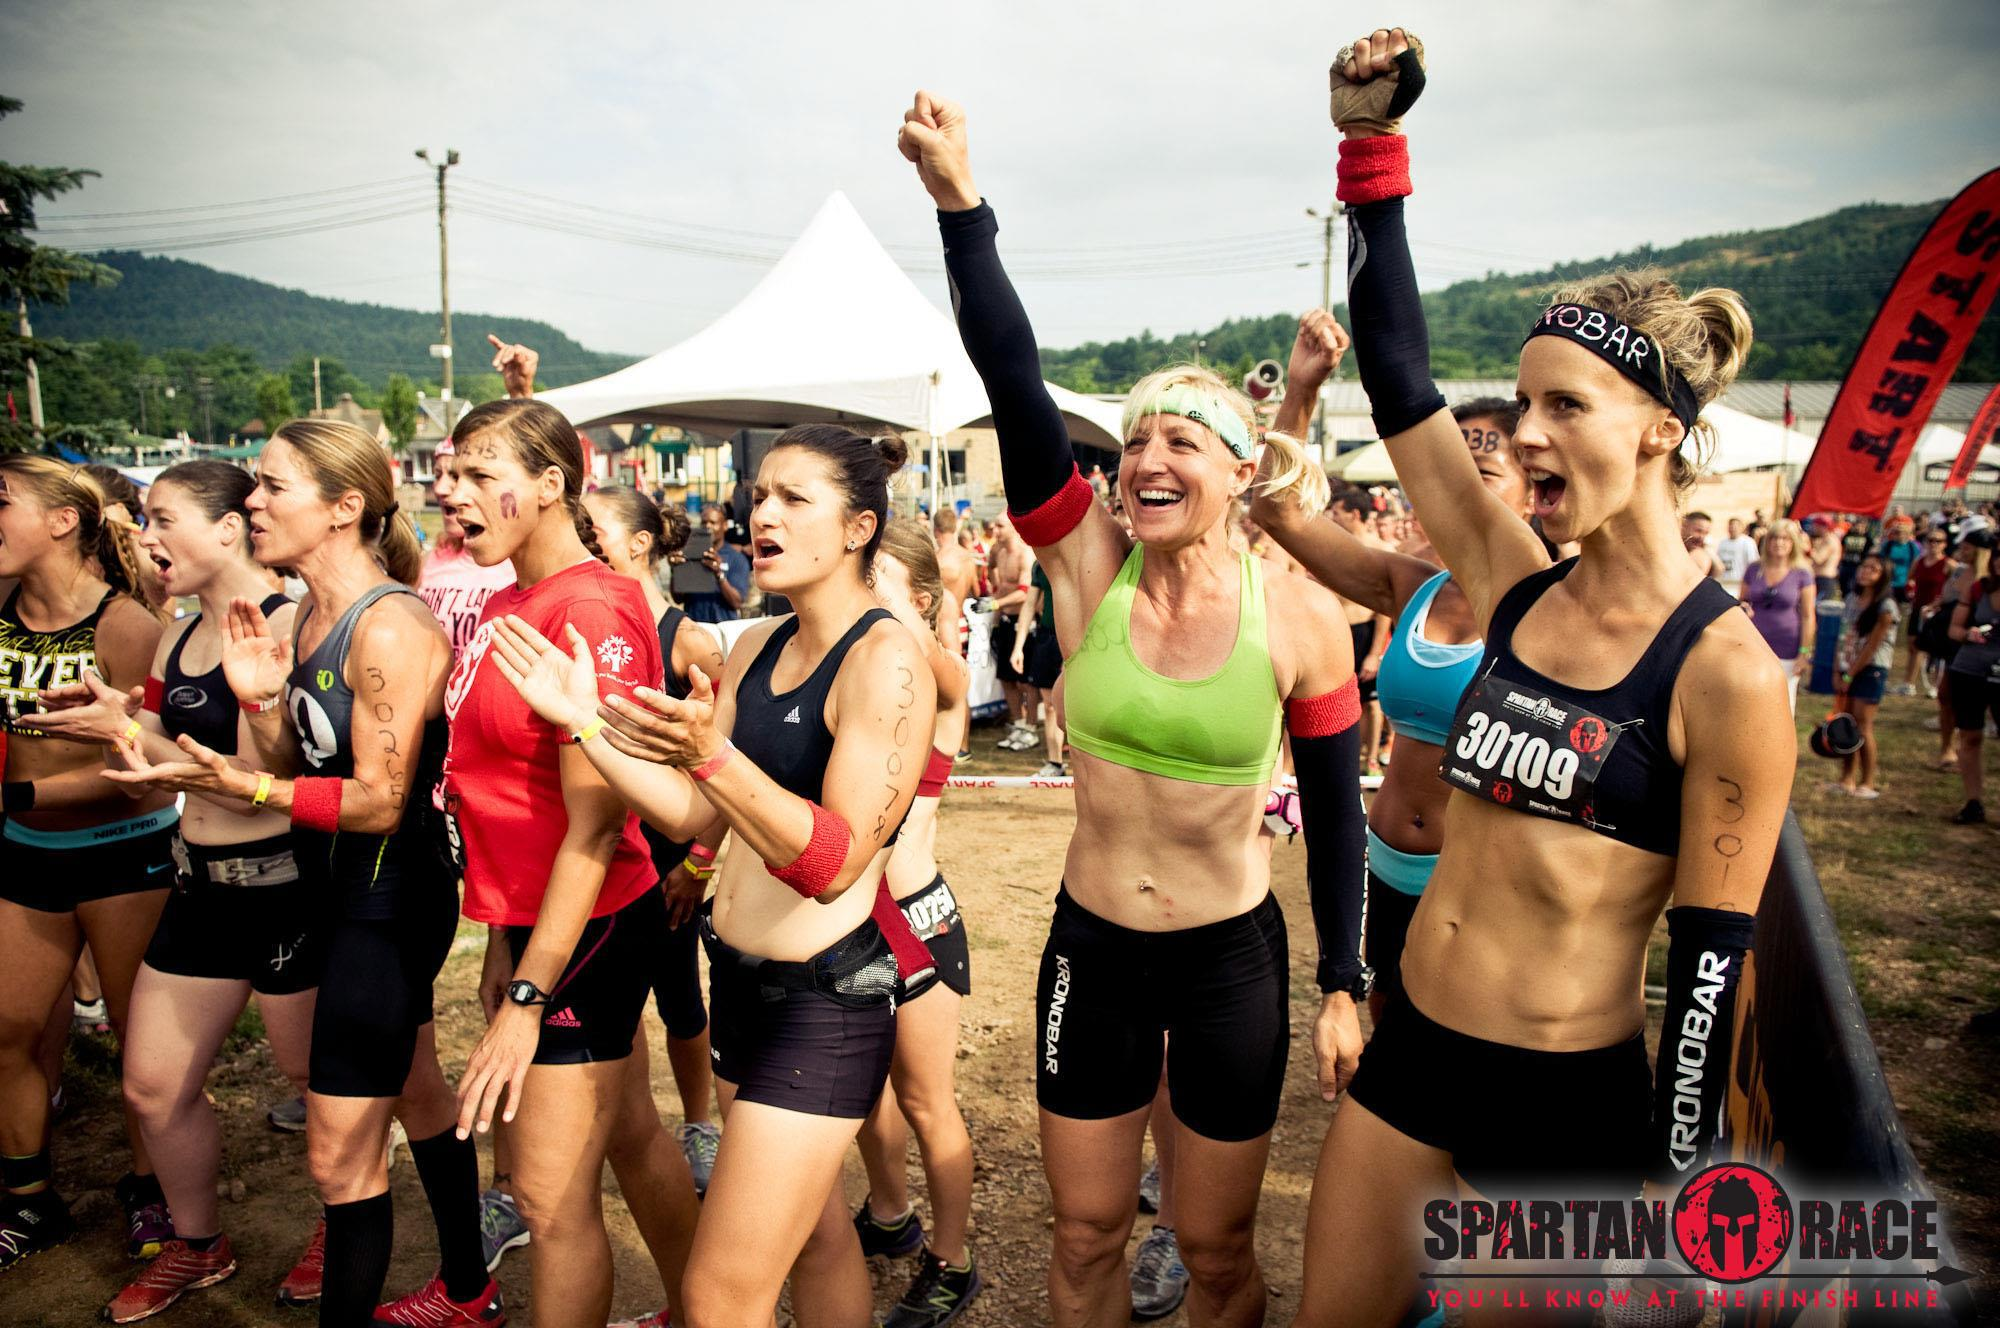 Fitness NICE!!!  The 2012 Spartan Race season has marked an incredible growth in our sport and enthusiasm among our athletes and fans